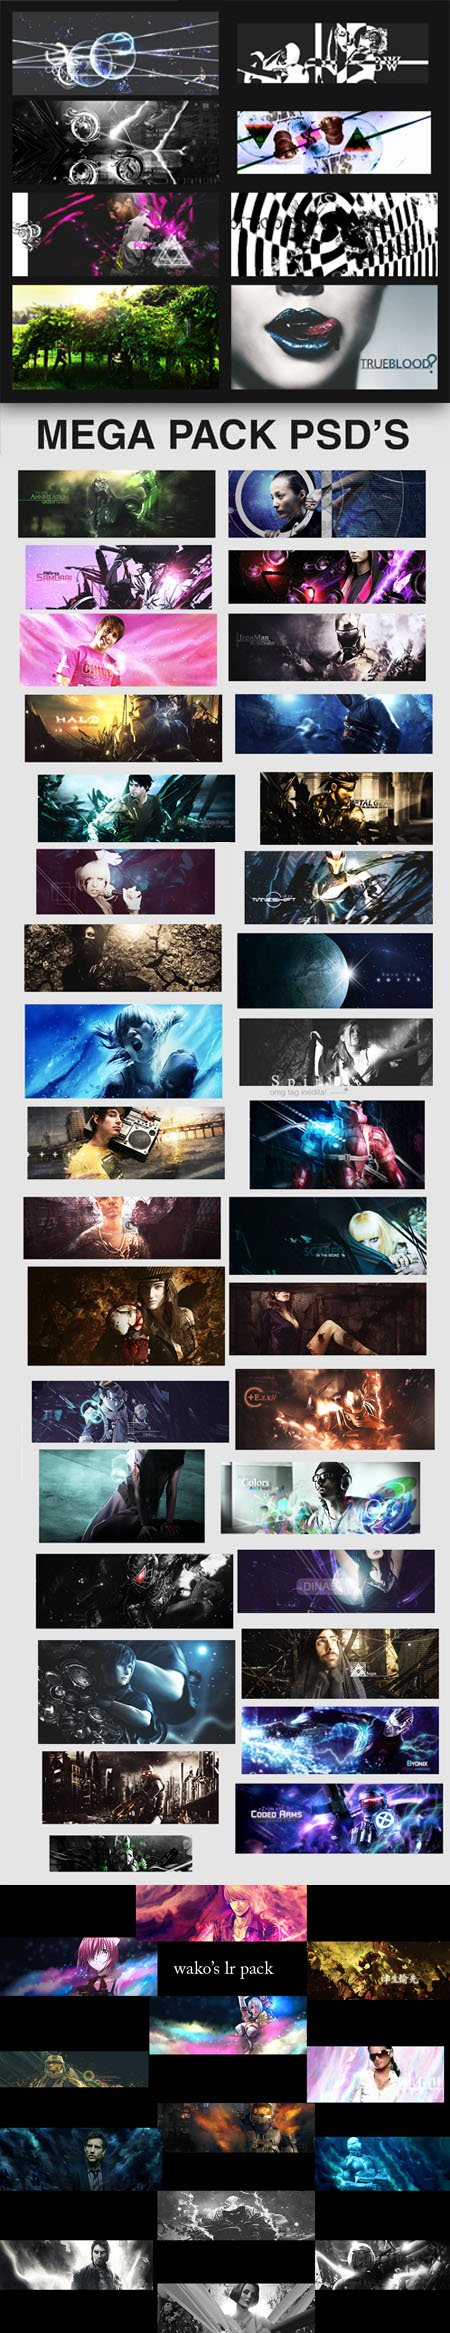 55 PSDs Pack with Awesome Effects